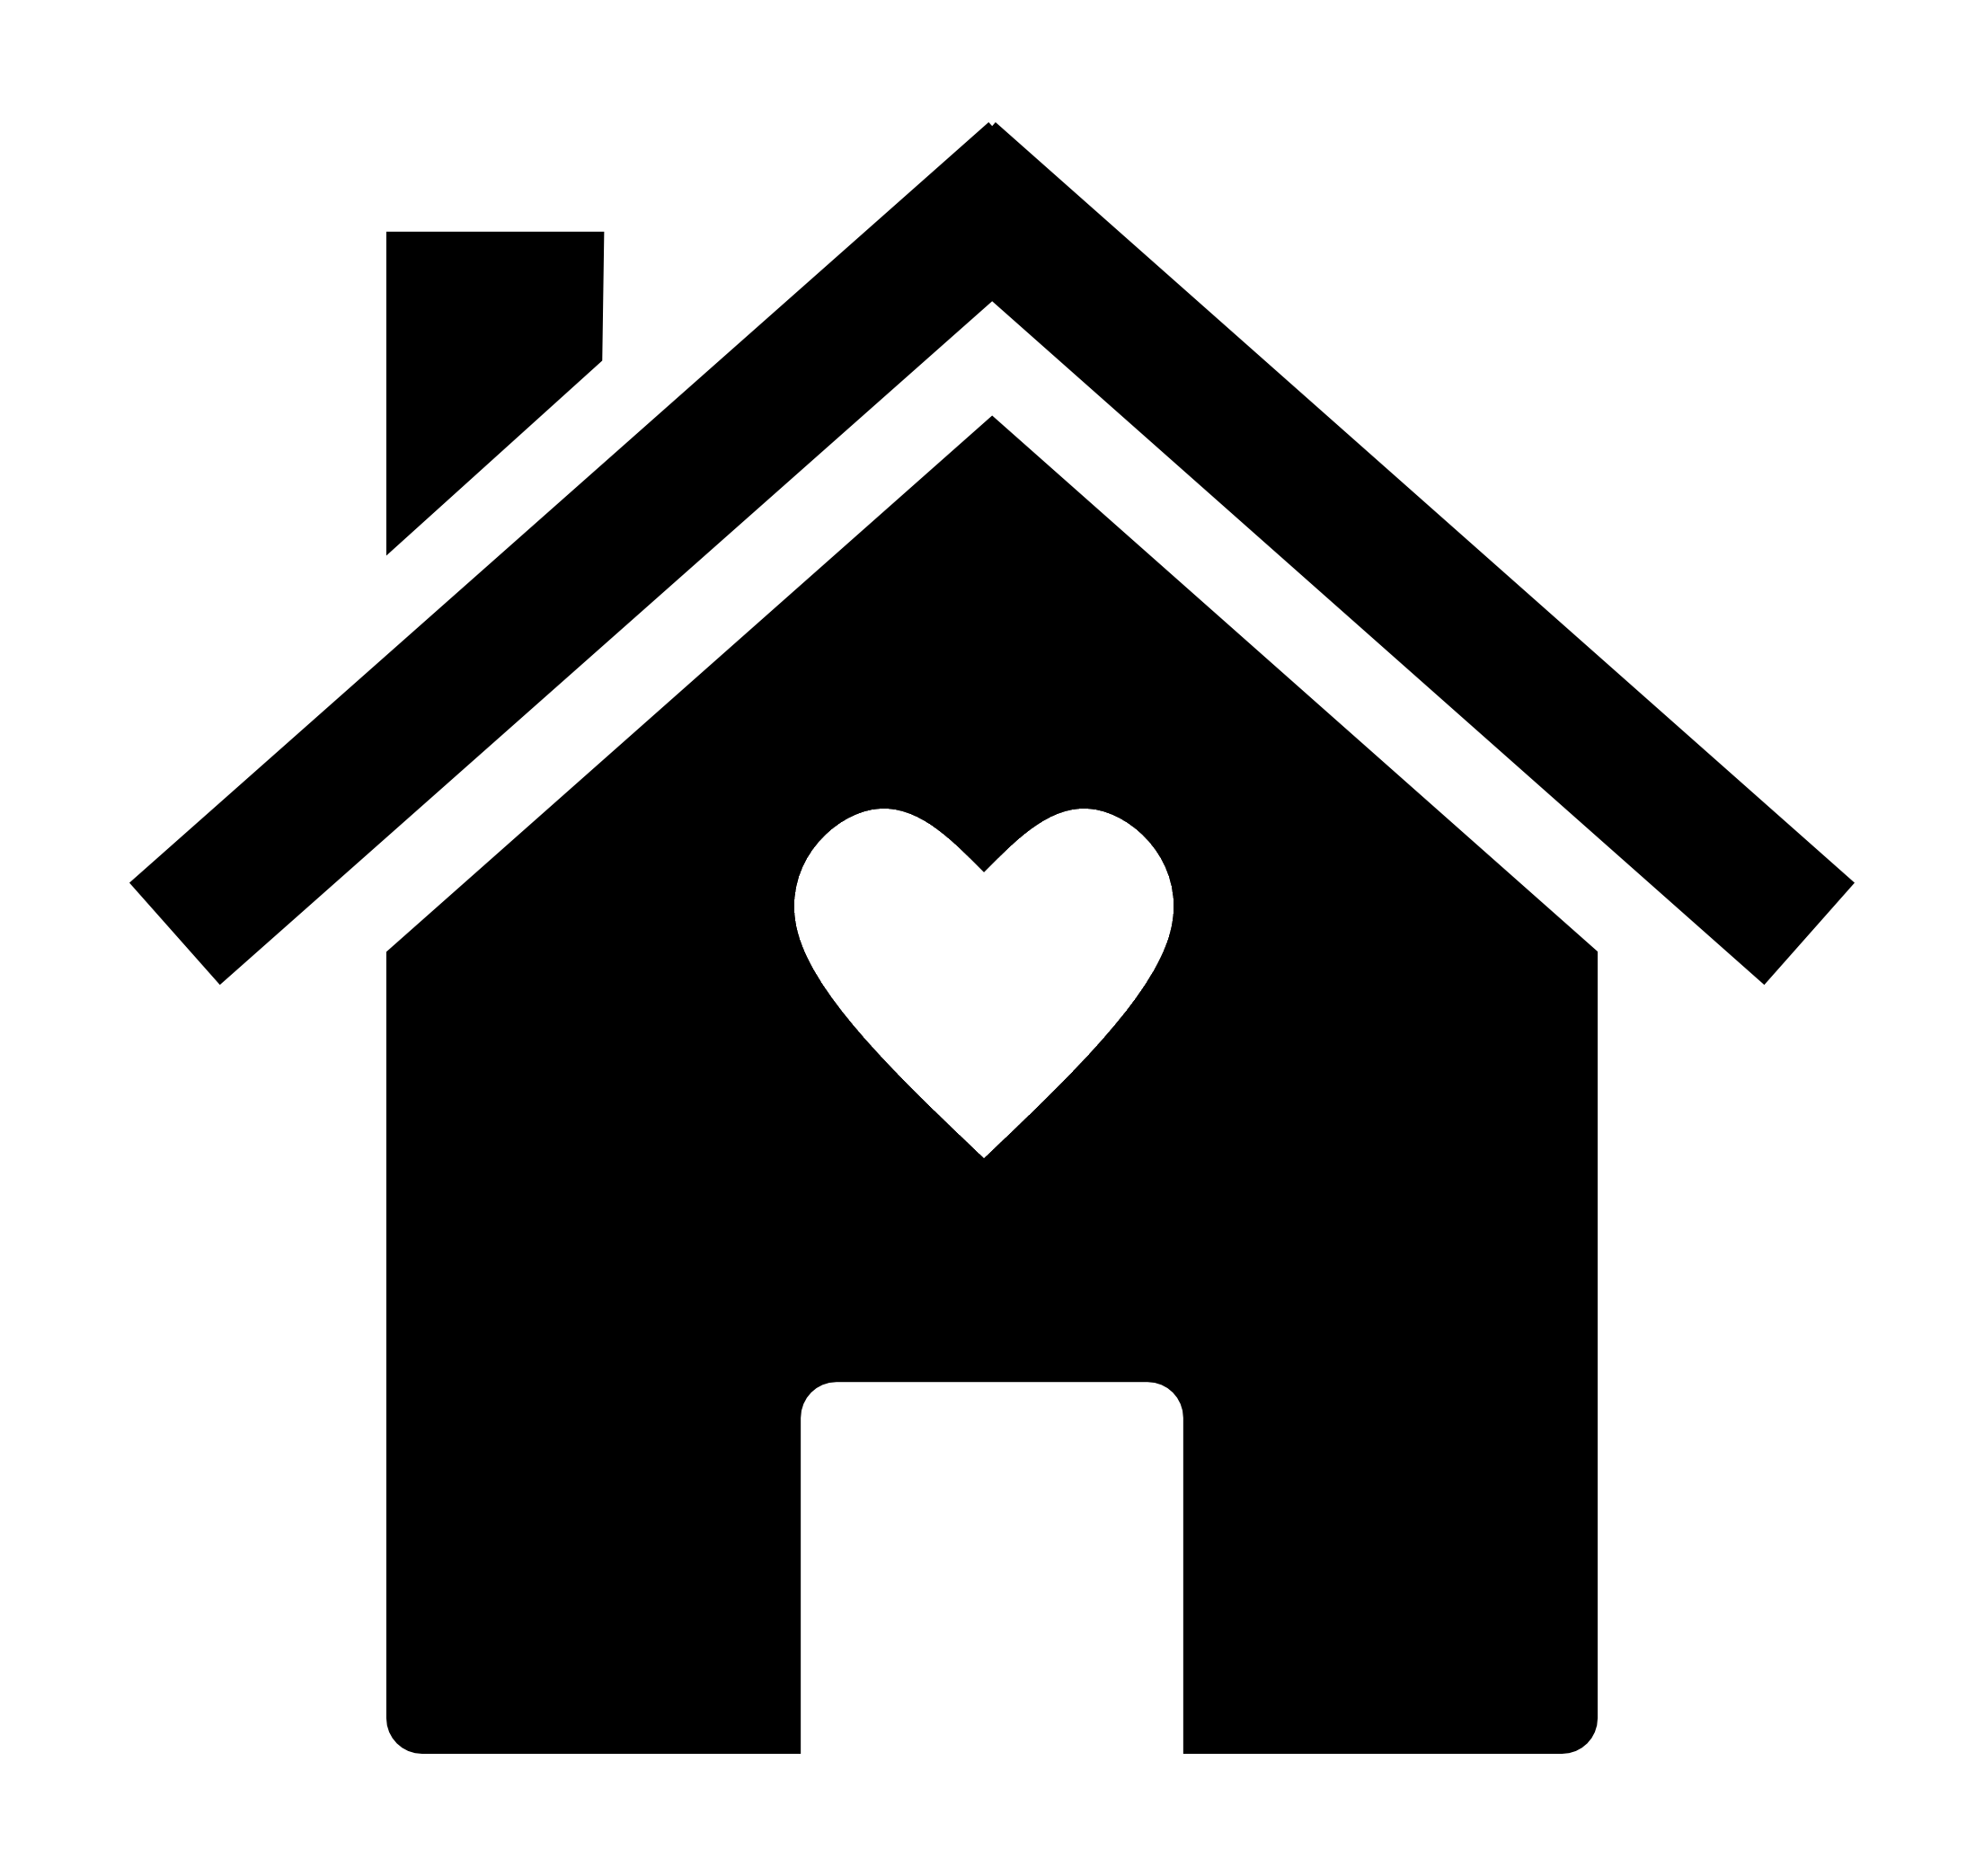 Black and white silhouette of a house with a chimney and a heart in the middle